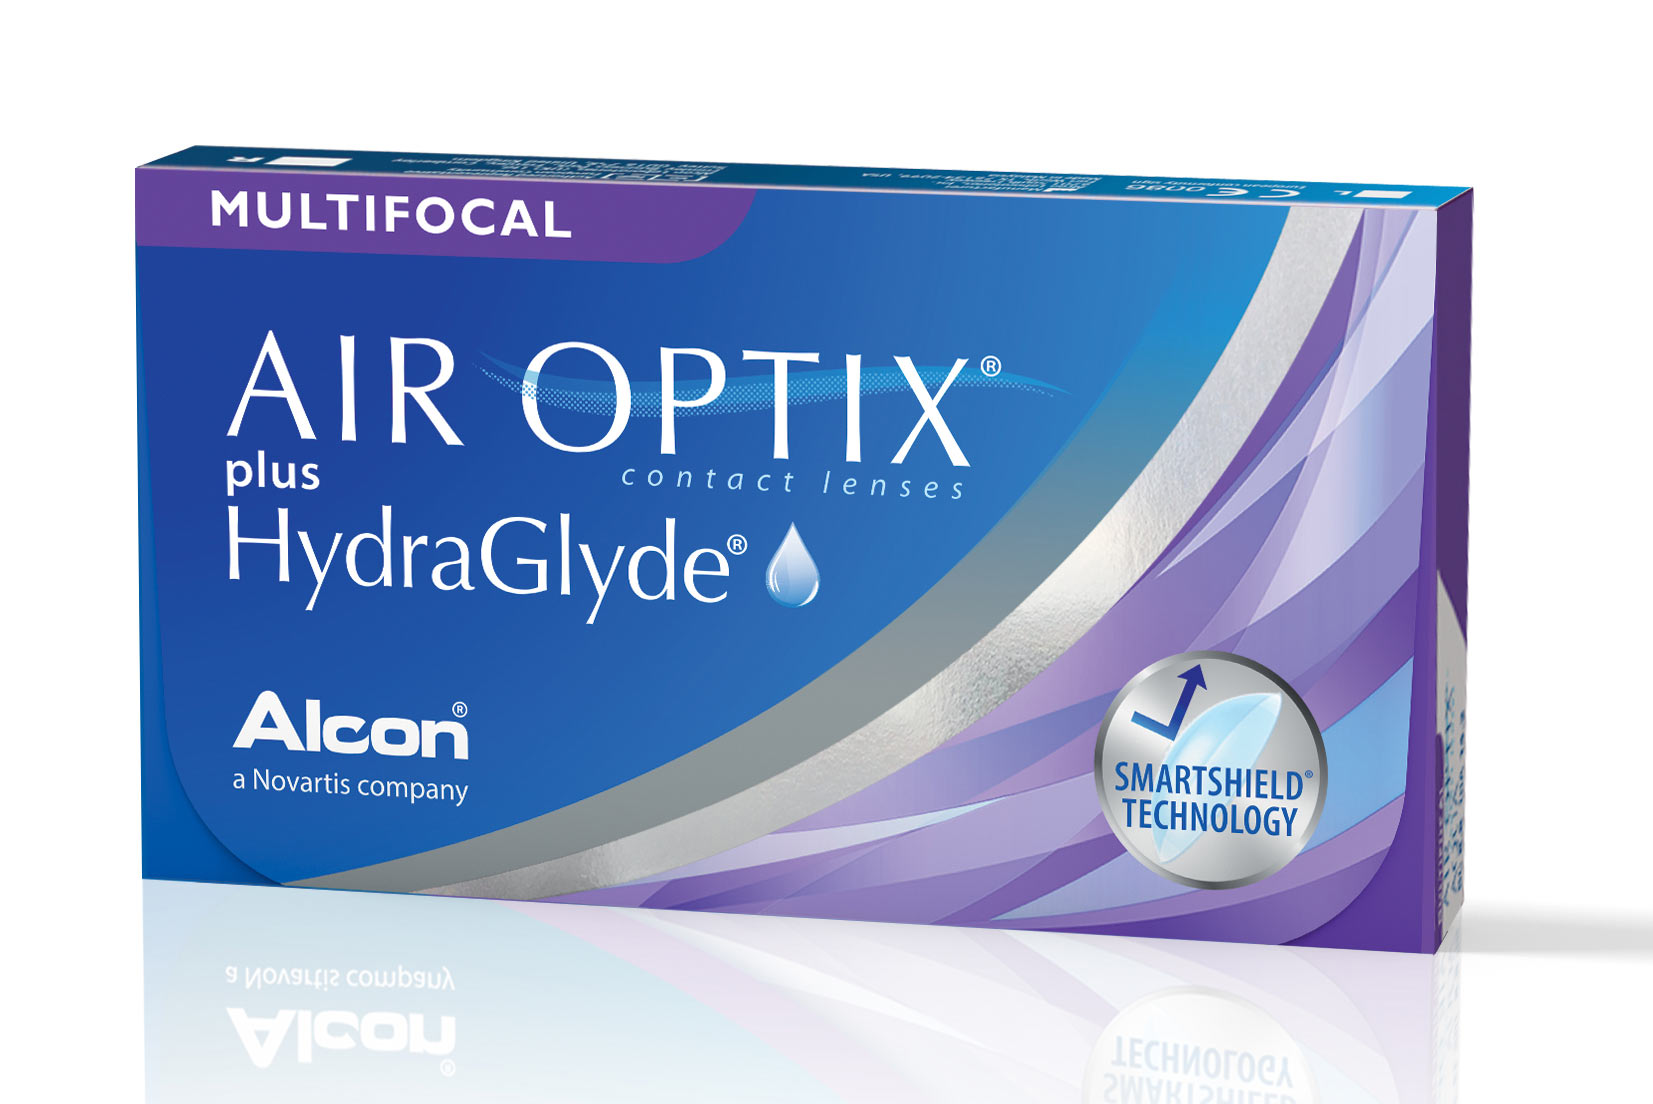 Air Optix Multifocal Plus Hydraglyde